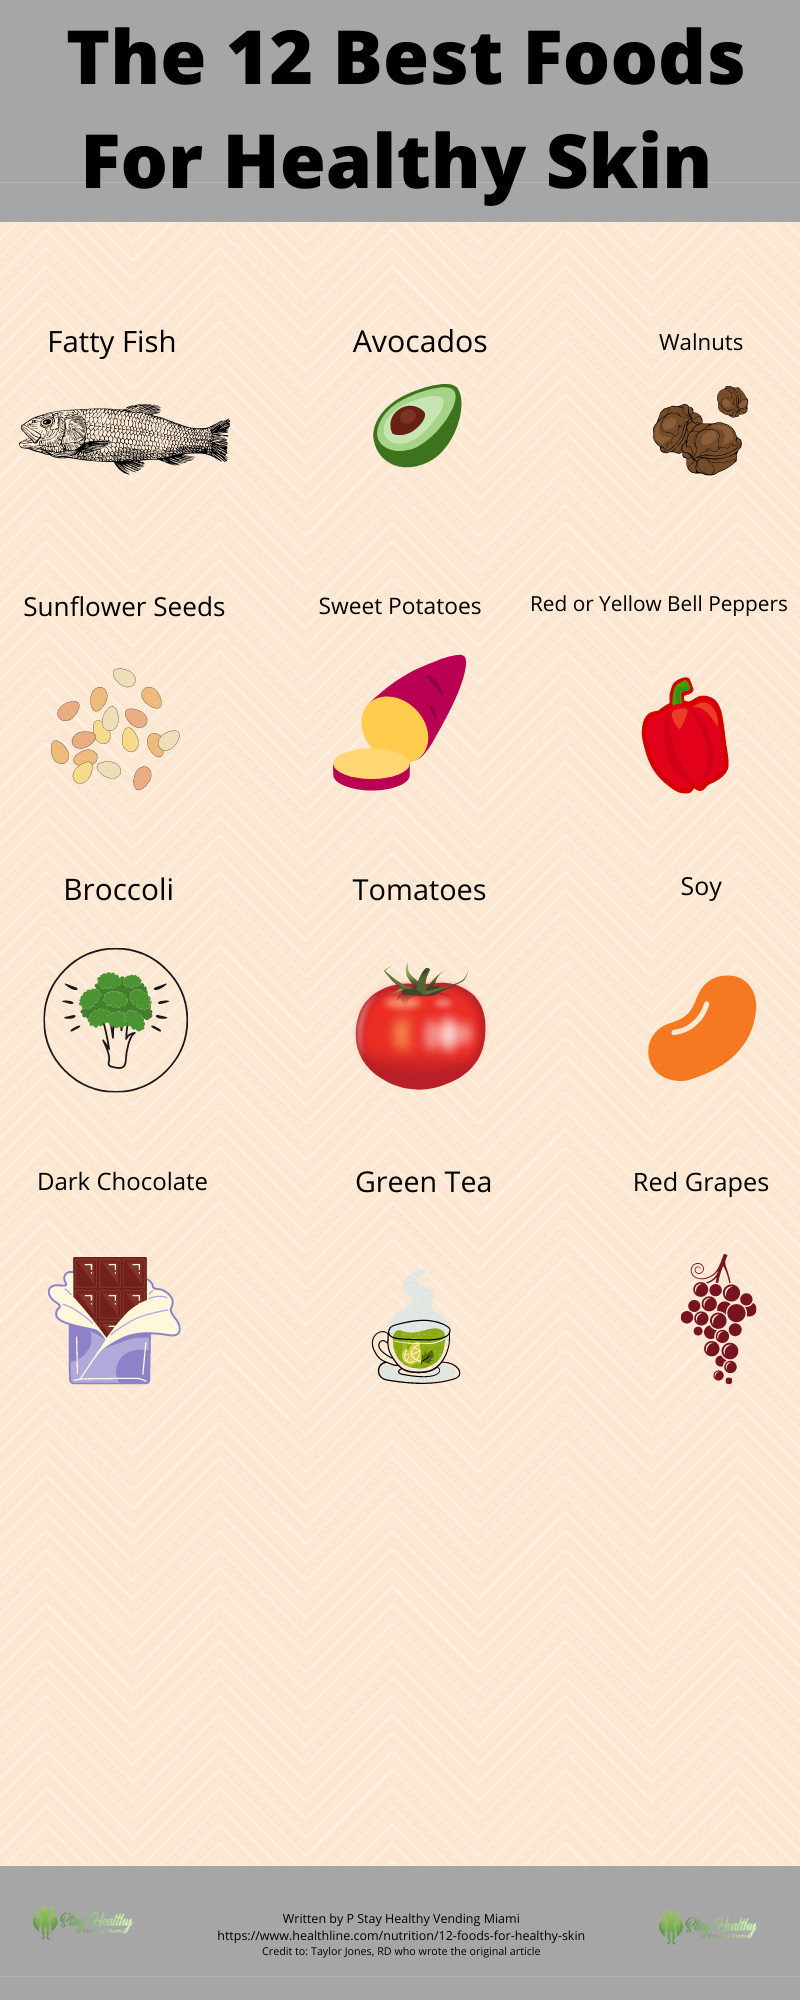 The 12 best foods for healthy skin infographic. If you healthy skin eat these foods. This is like a glowing skin diet. It talks about fatty fish, avocados, walnuts, sunflower seeds, sweet potatoes, red or yellow bell peppers, broccoli, Tomatoes, Soy, Dark Chocolate, green tea, Red grapes all these are best foods for skin. Always take care of your skin. The original article talks about avocados good for skin we never knew that. Check out the article as well.